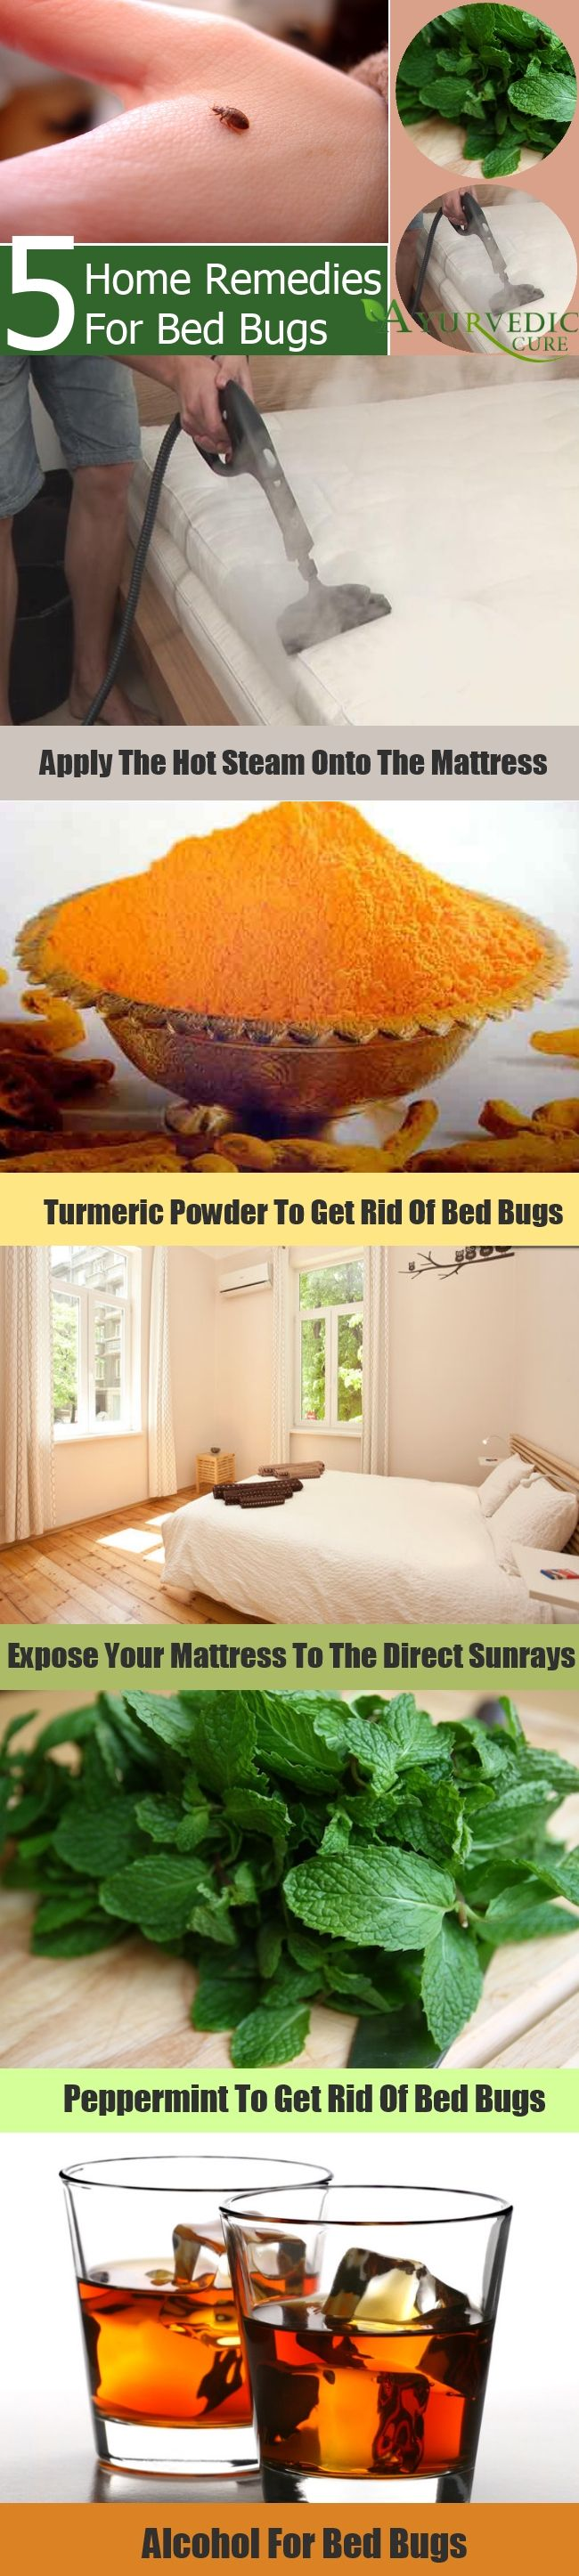 Wants To Get Rid Of Bed Bugs...??